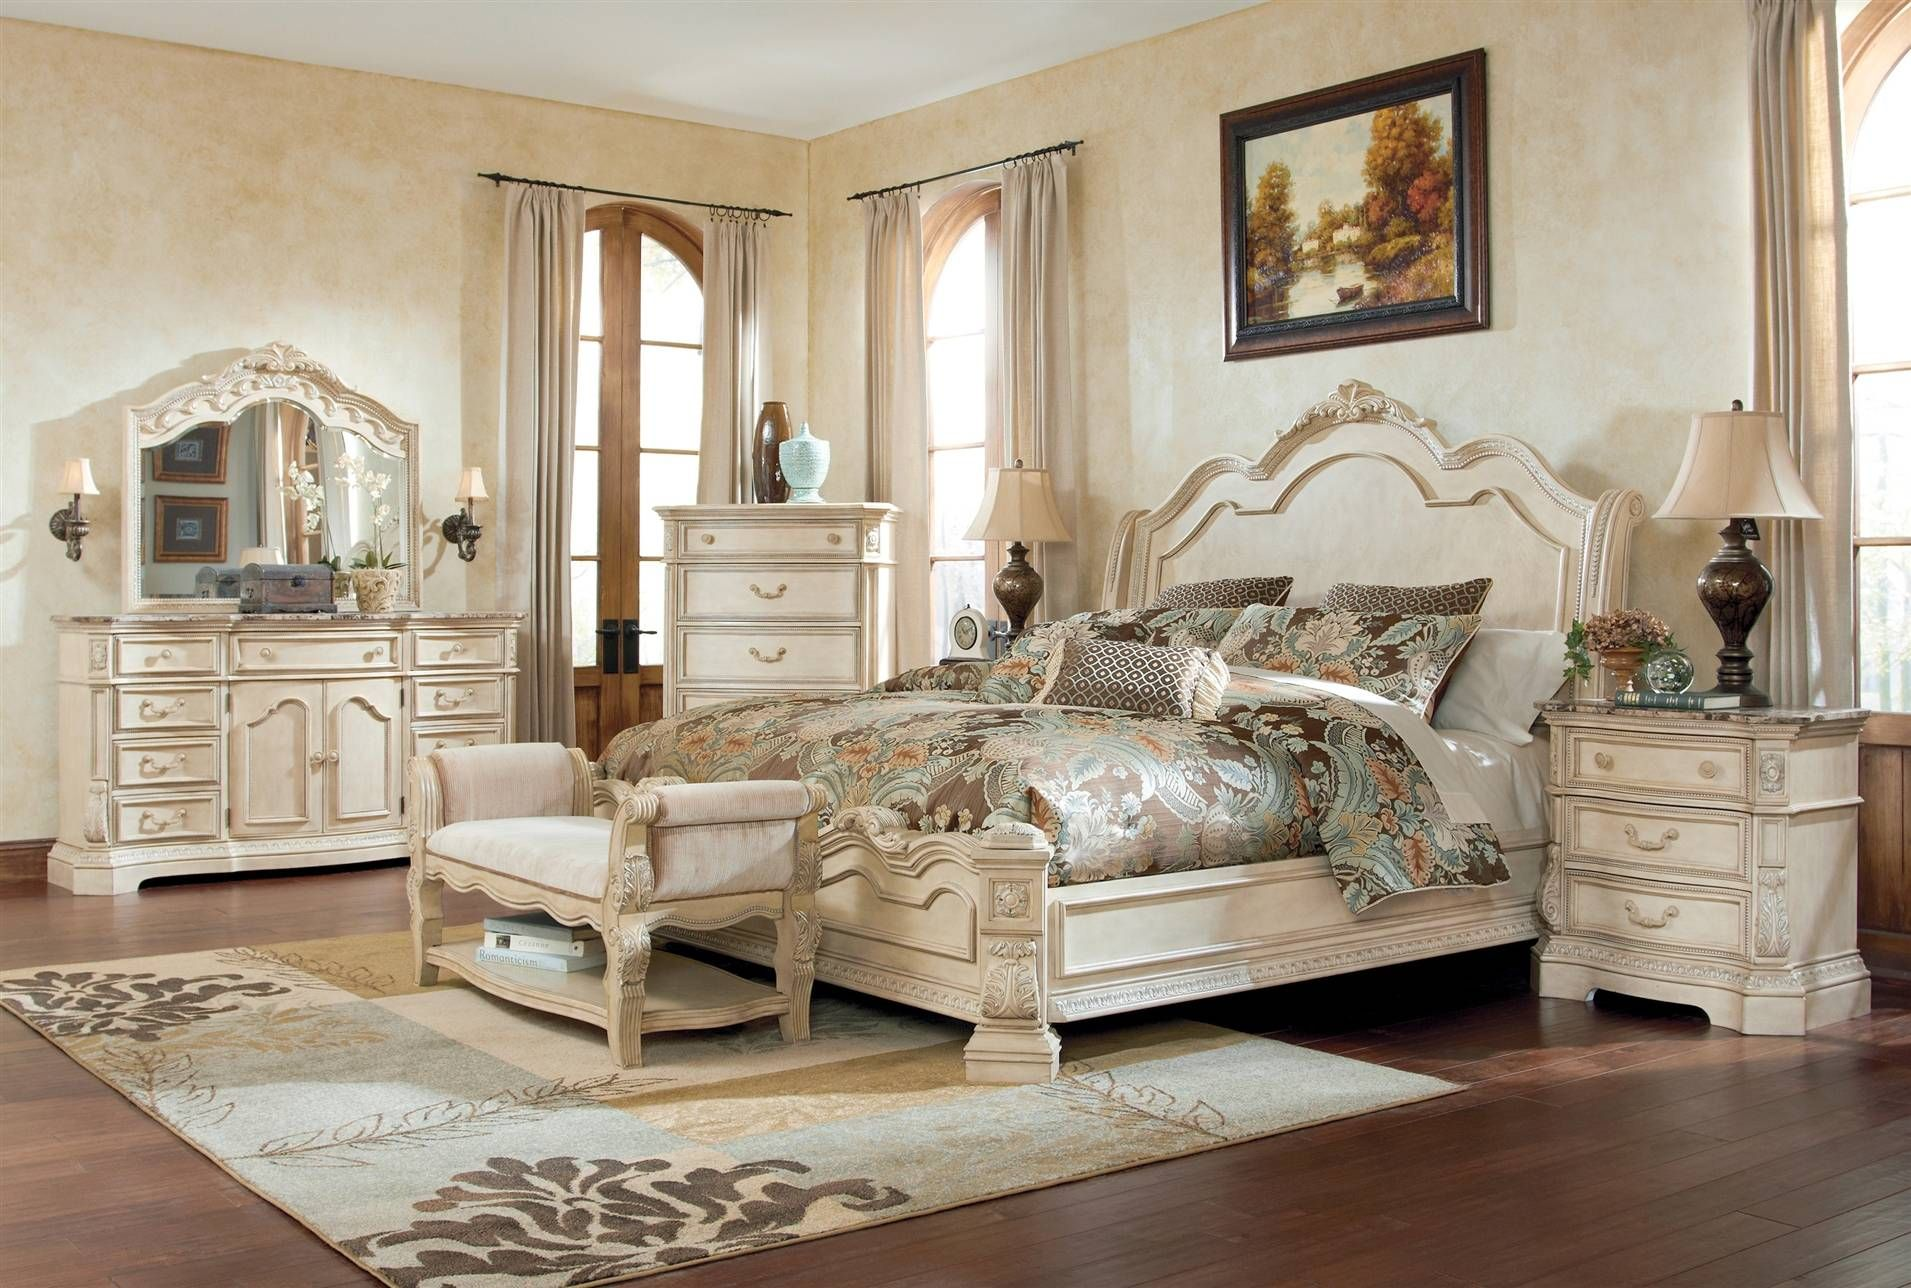 Ortanique Cal King Sleigh Bed With Images White Bedroom Set Antique White Bedroom Furniture